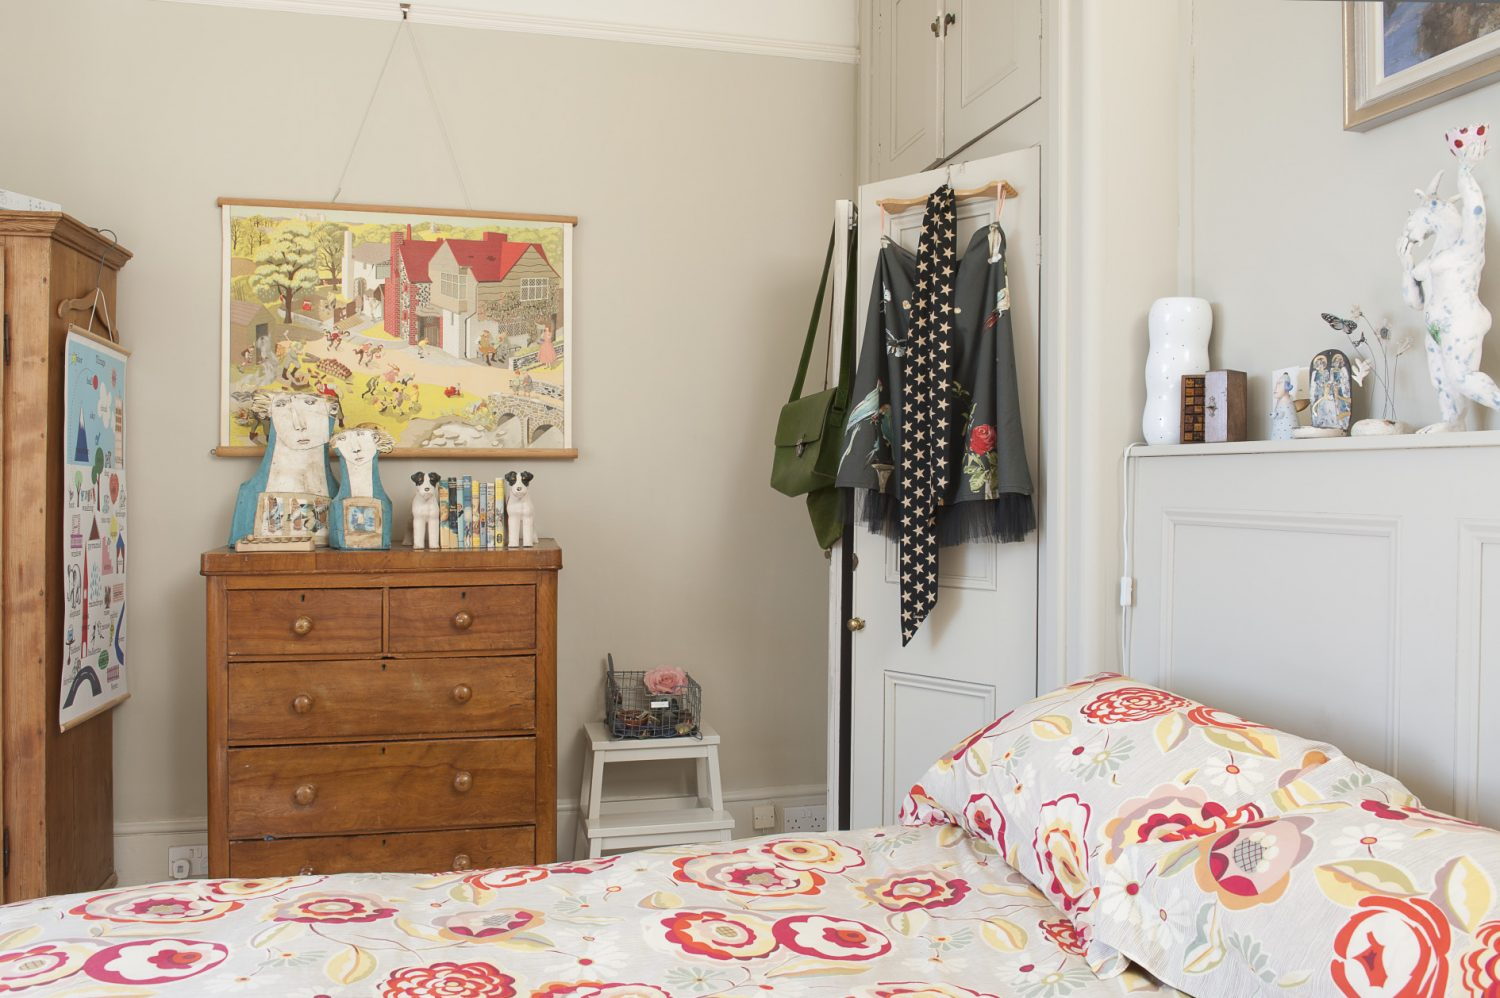 The bed in the master bedroom is dressed with bright, Collier Campbell bedlinen featuring a zinnia-like floral pattern